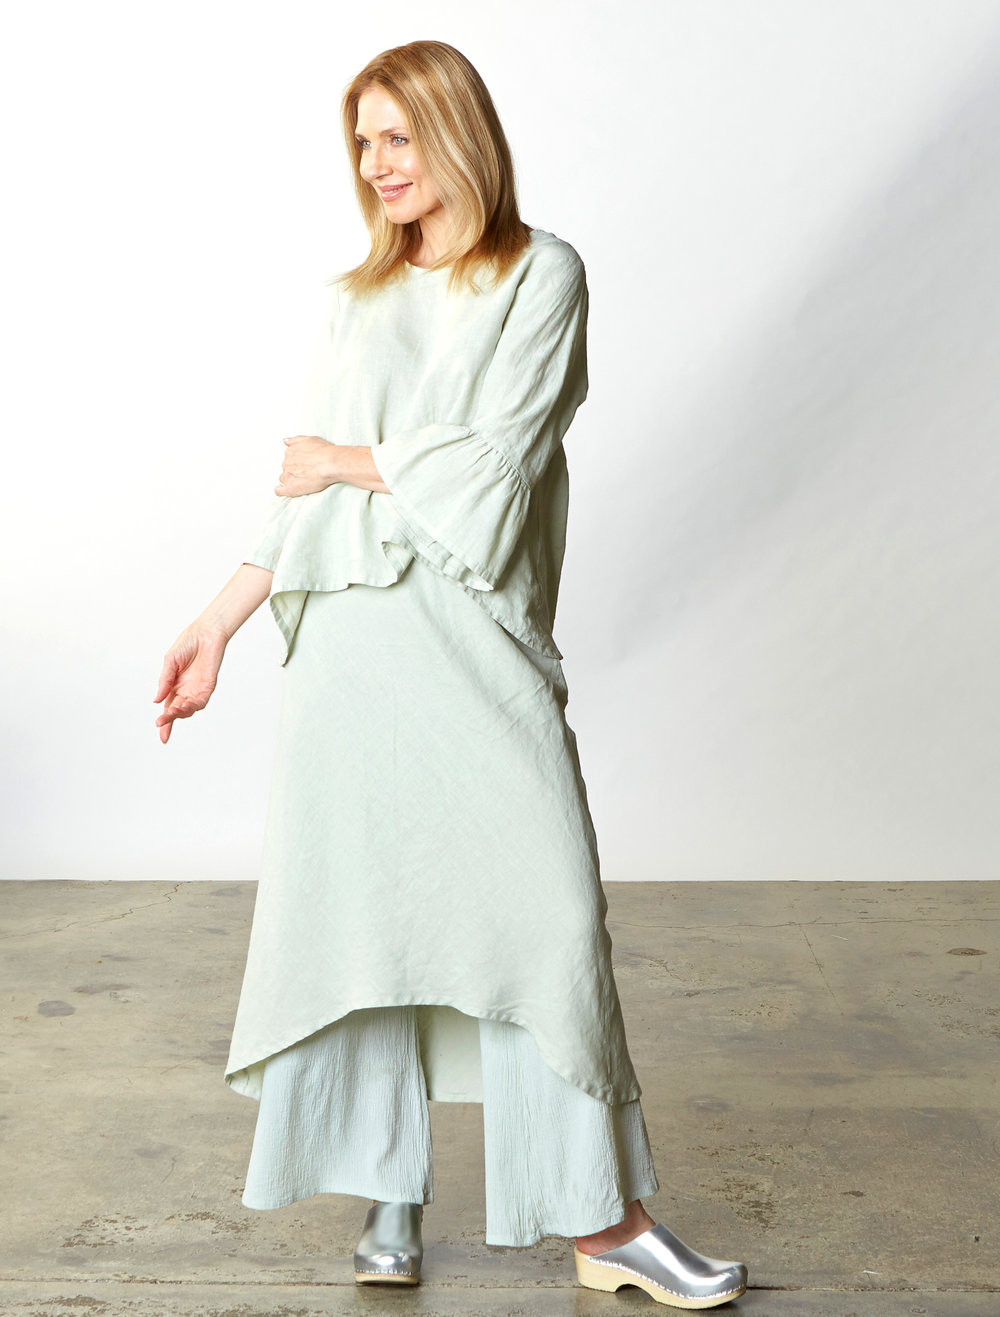 Fran Shirt, Bias Skirt in Pistachio Light Linen, Oscar Pant in Pistachio Cotton Gauze